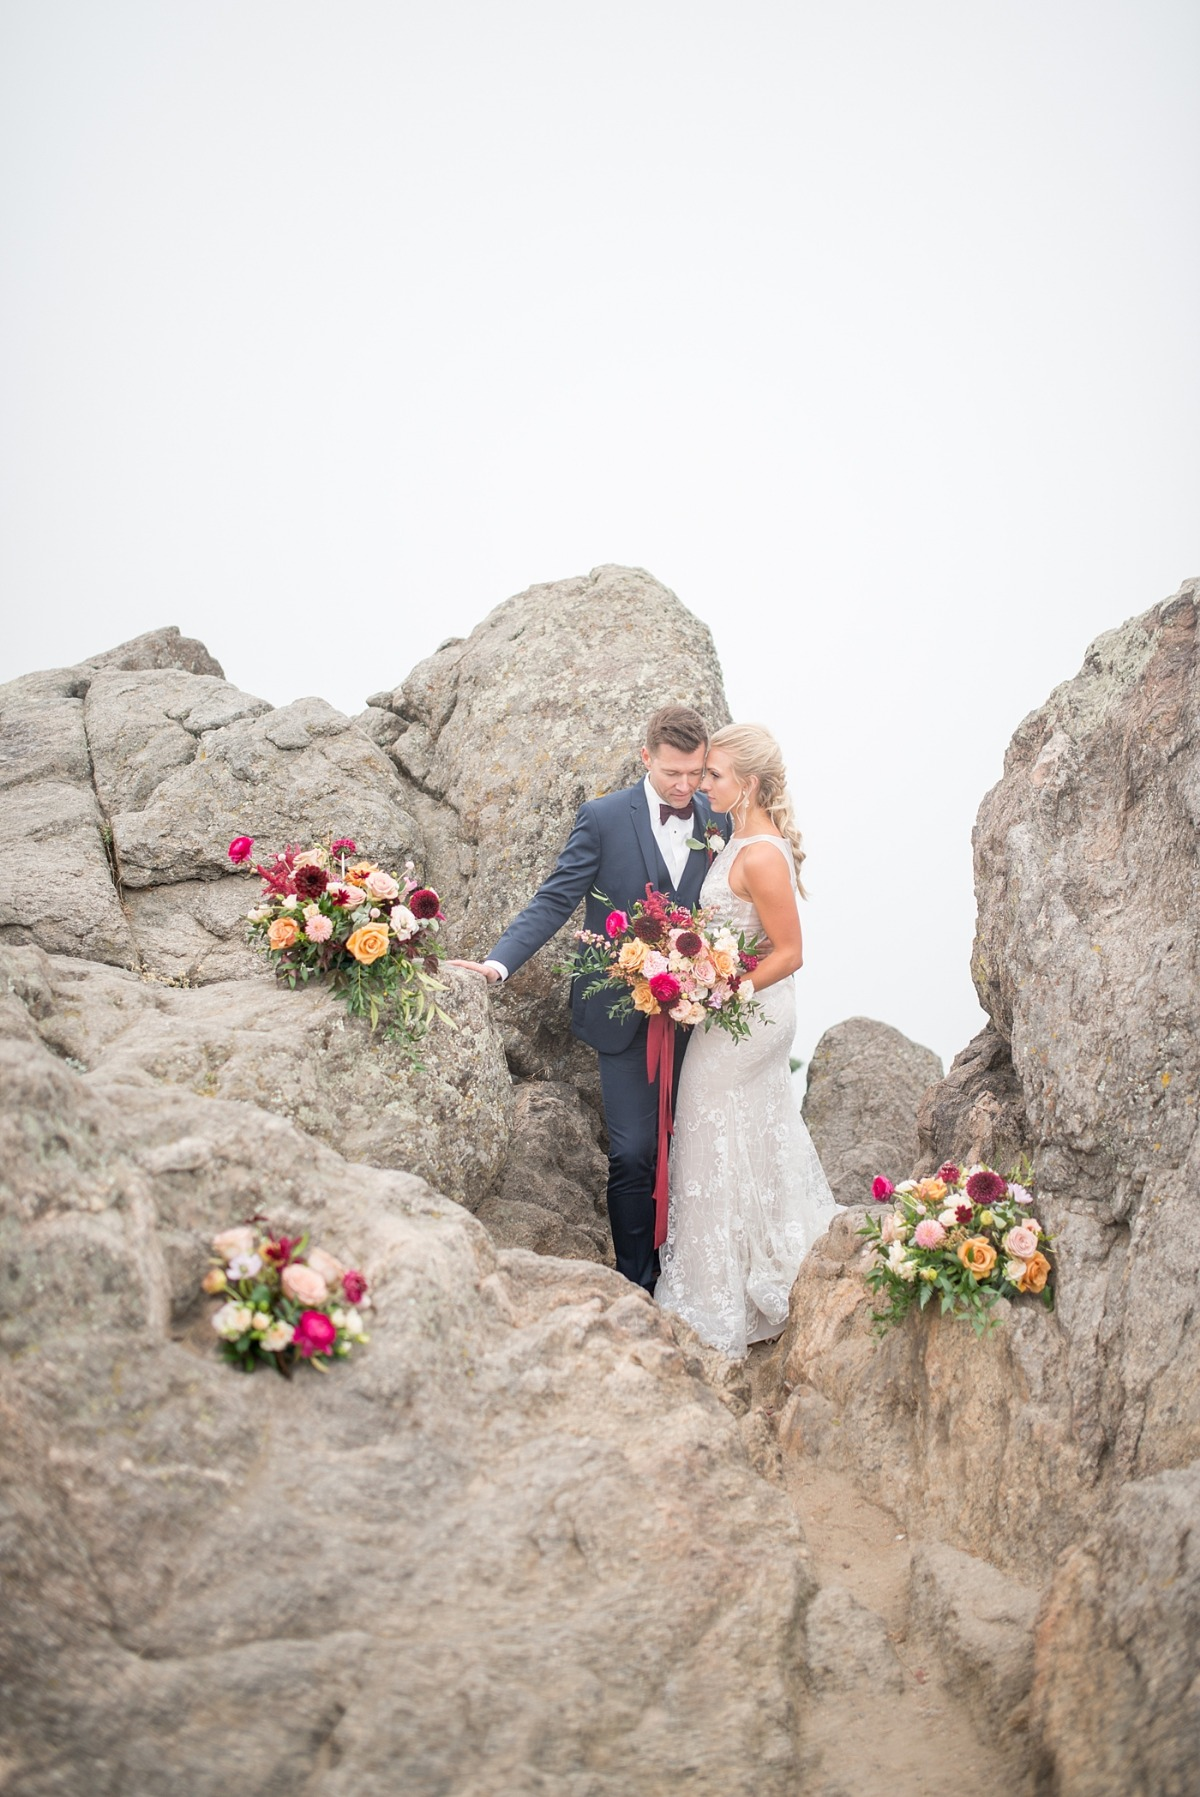 Mountain elopement idea